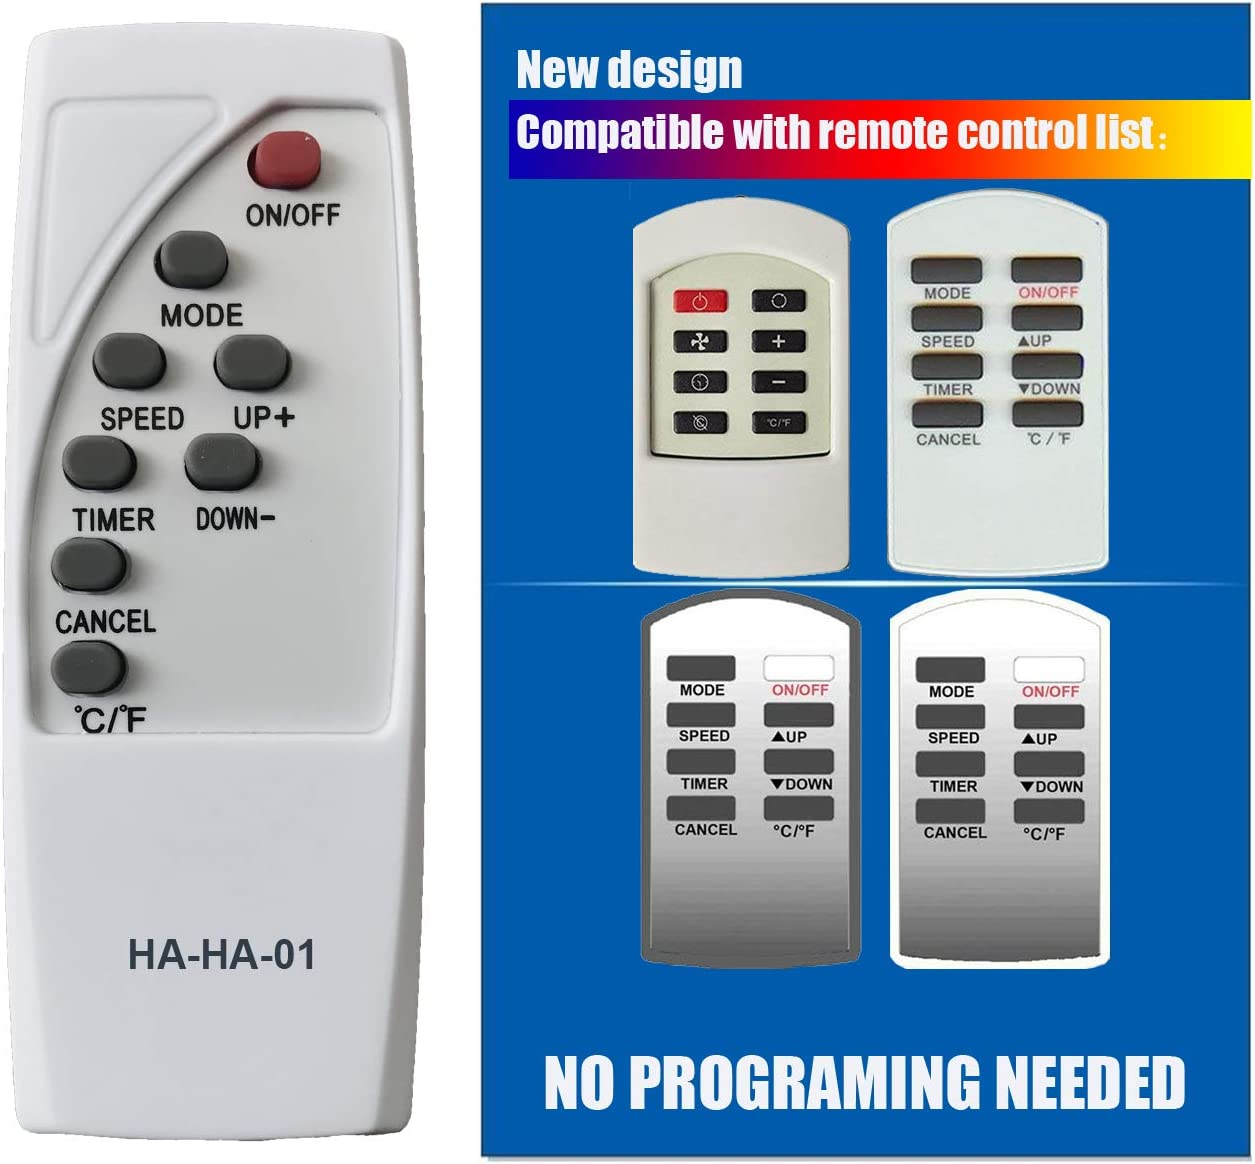 HA-HA-01 Replacement for Haier Commercial Cool Air Conditioner Remote Control AC-5620-54 AC-5620-55 AC-5620-45 AC-5620-42 AC-5620-44 AC-5620-44-NP CPRB07XC7 HPRB07XC7 HPRB09XC7 CPRB09XC7 CPRB07XC7-B